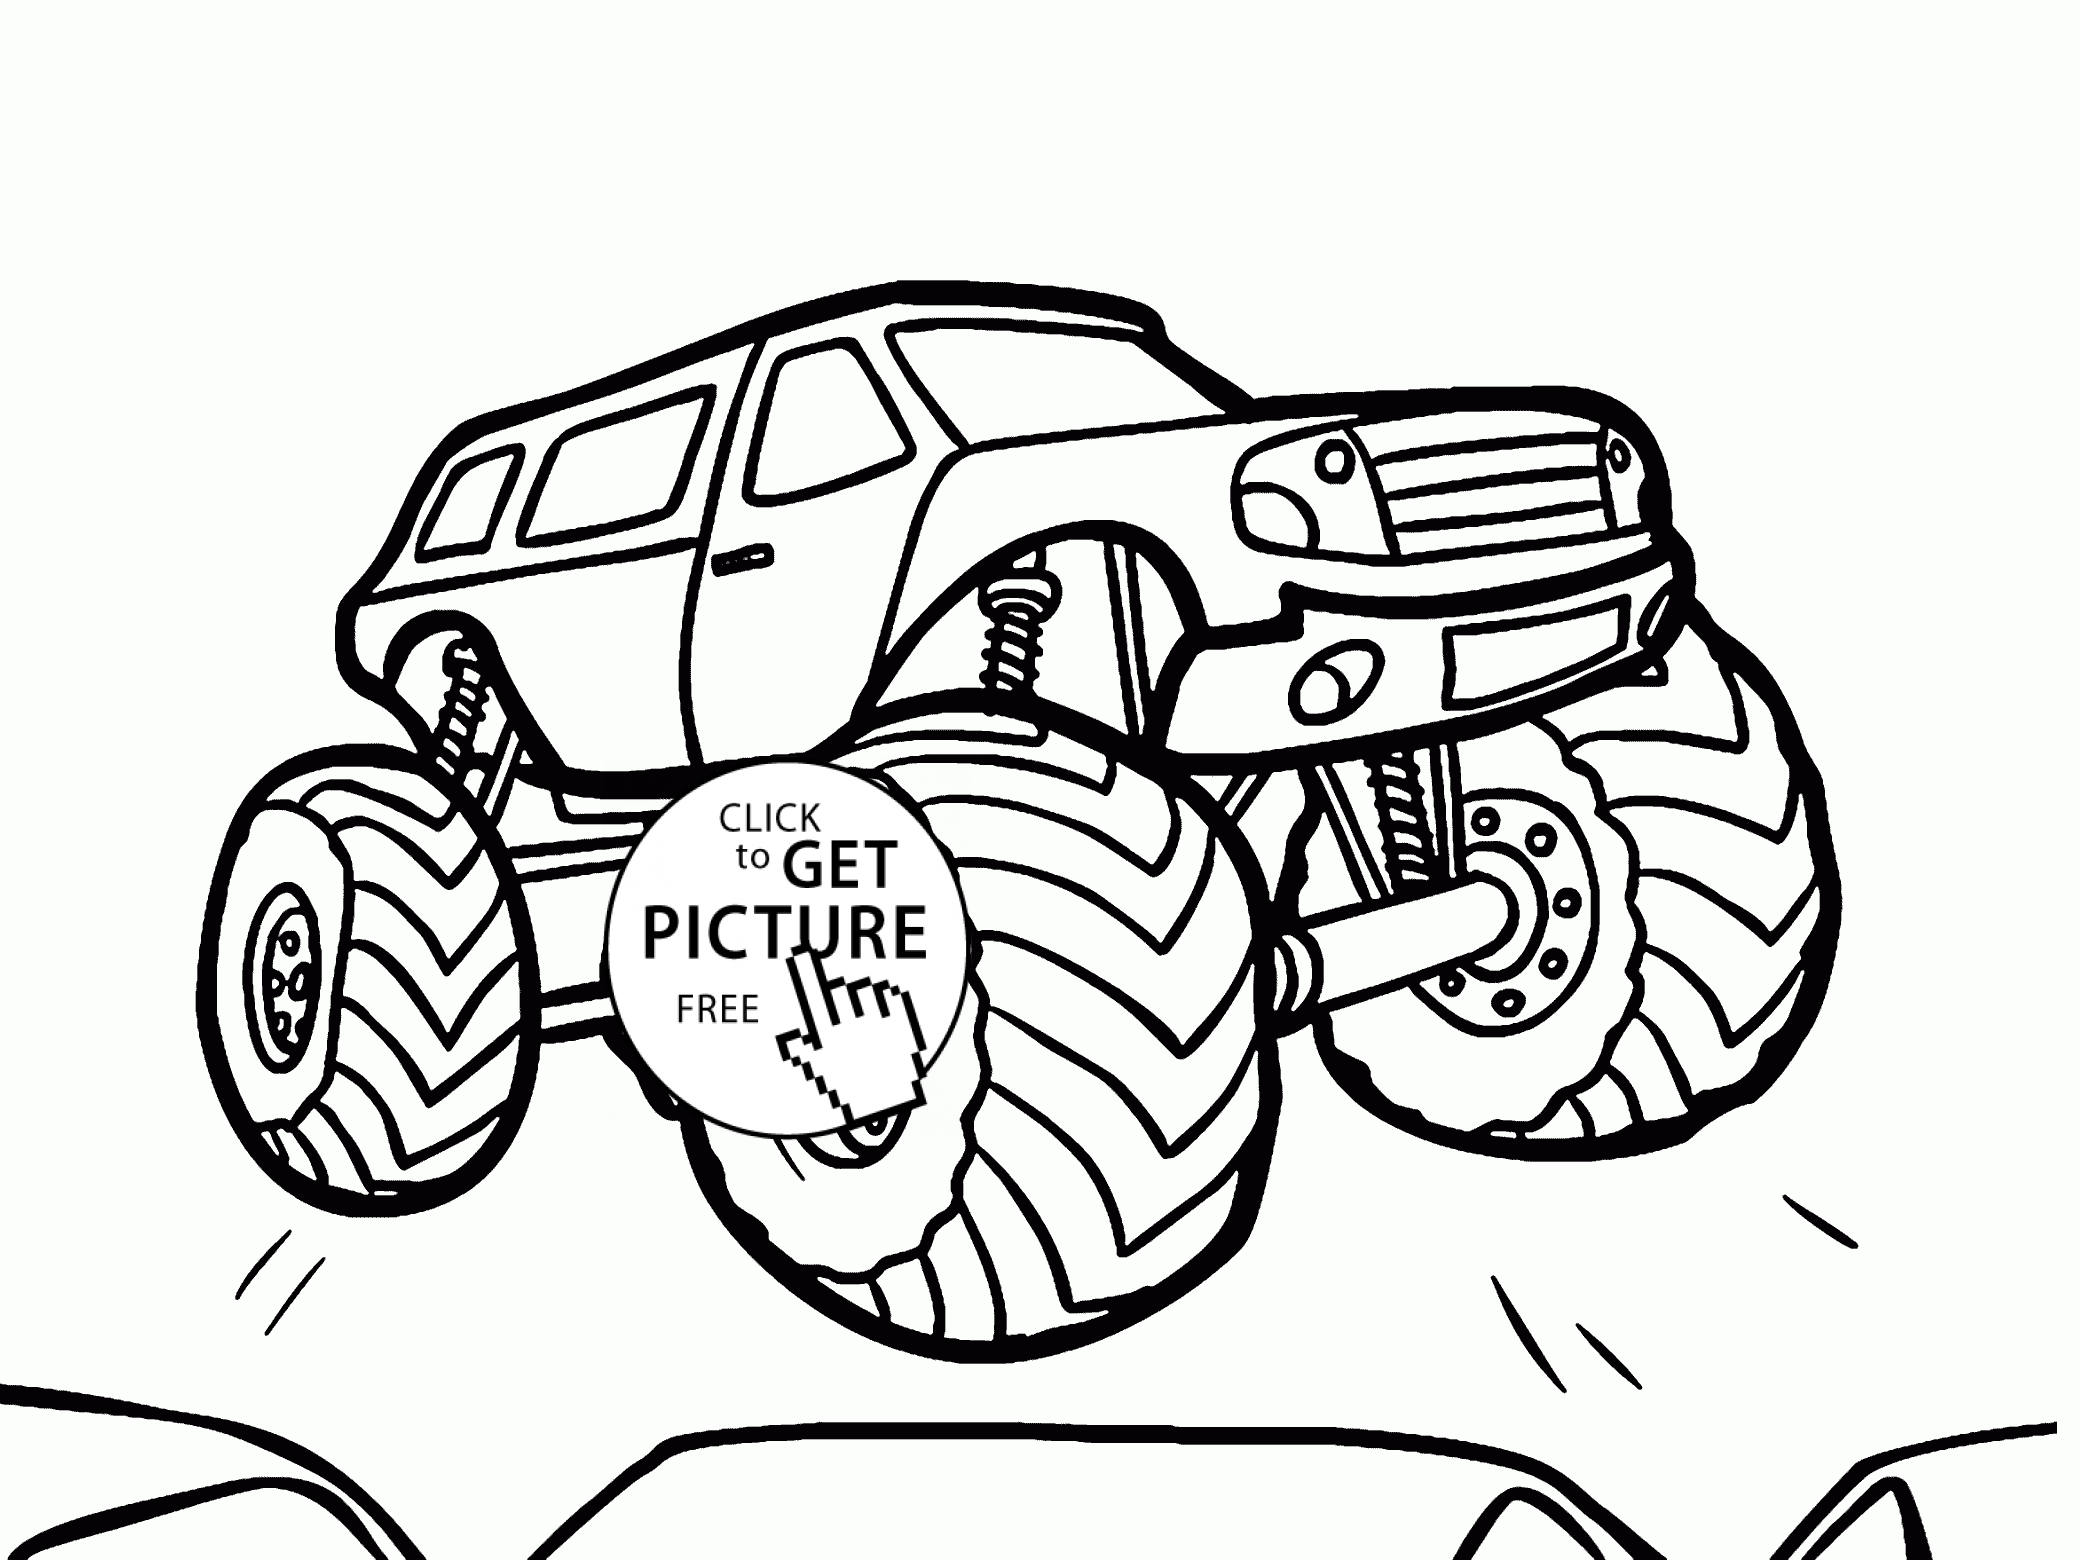 21 Bigfoot Coloring Page Selection | FREE COLORING PAGES - Part 2